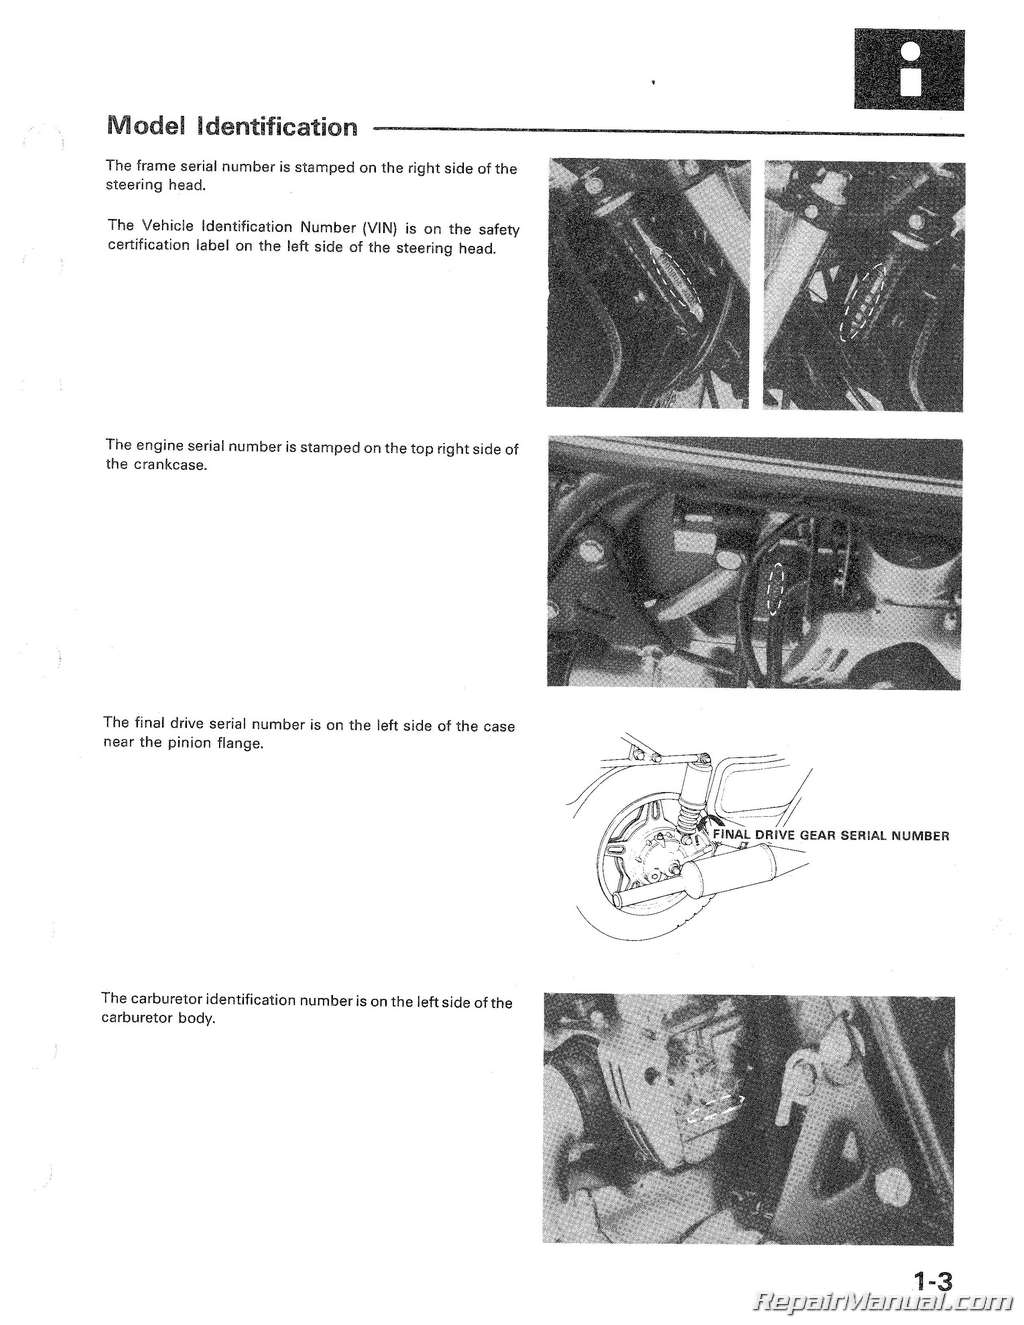 1980 1982 Honda Gl1100 Gold Wing Motorcycle Service Manual Wiring A 1981